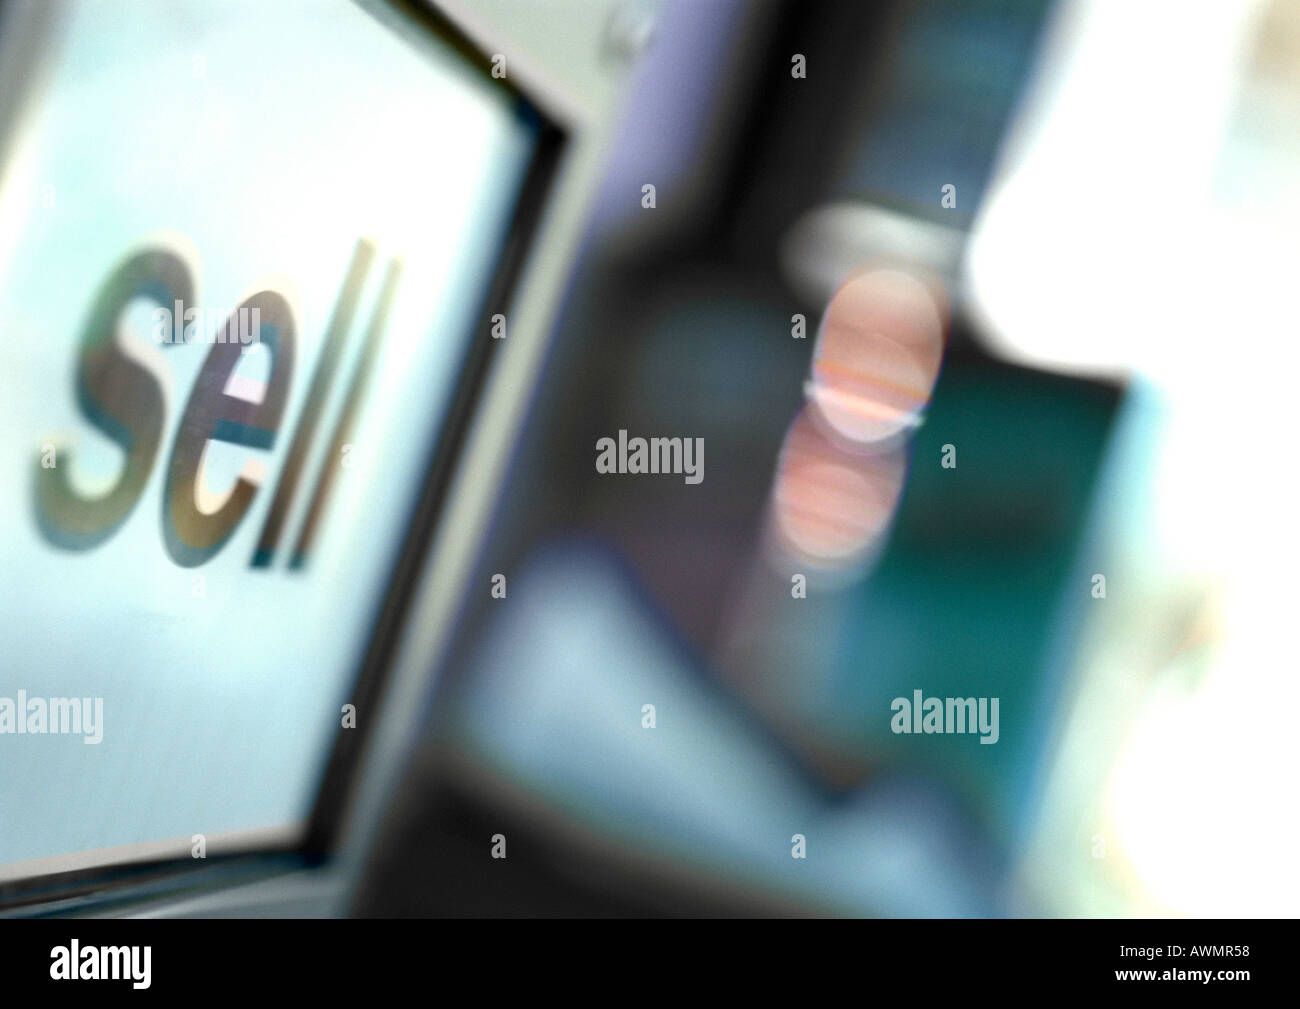 Sell text on screen, close-up - Stock Image